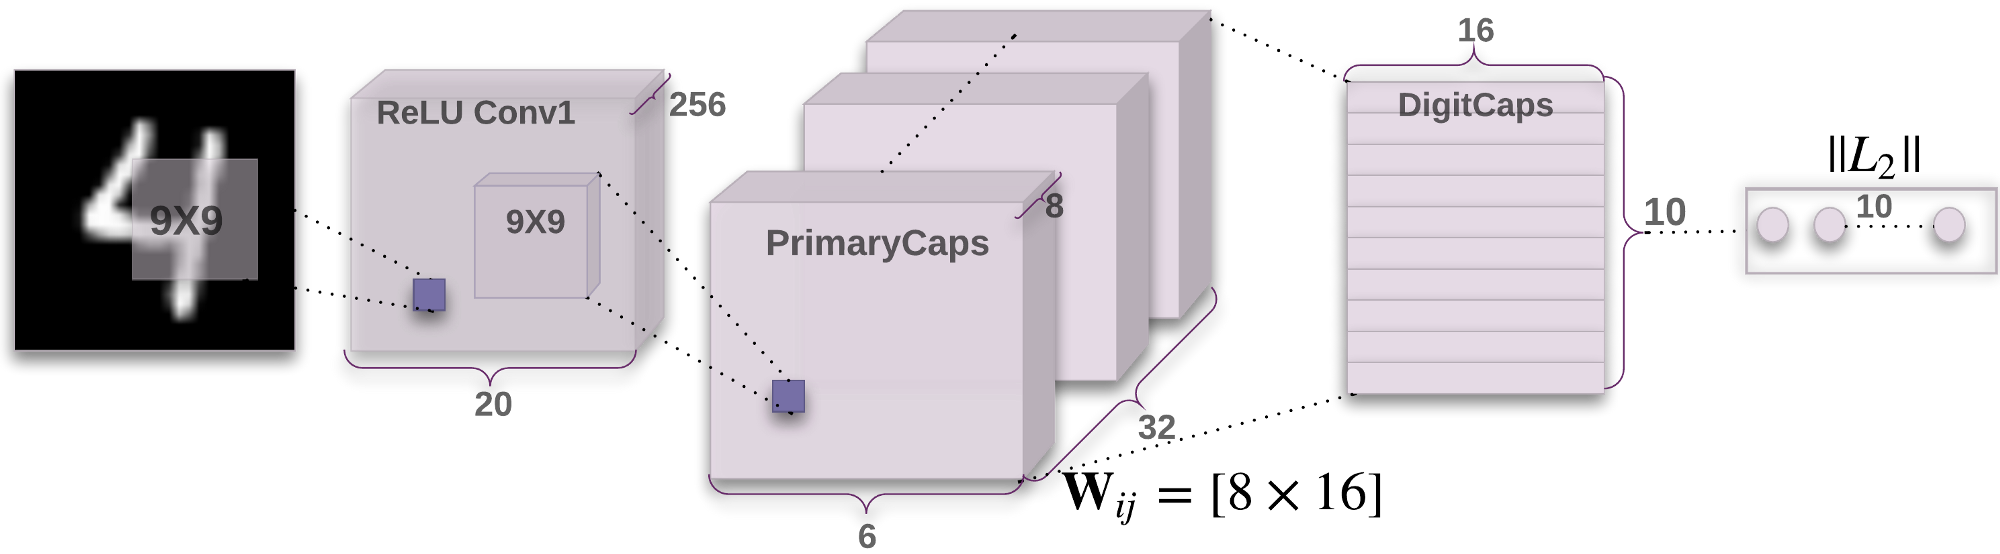 Architecture of CapsNet